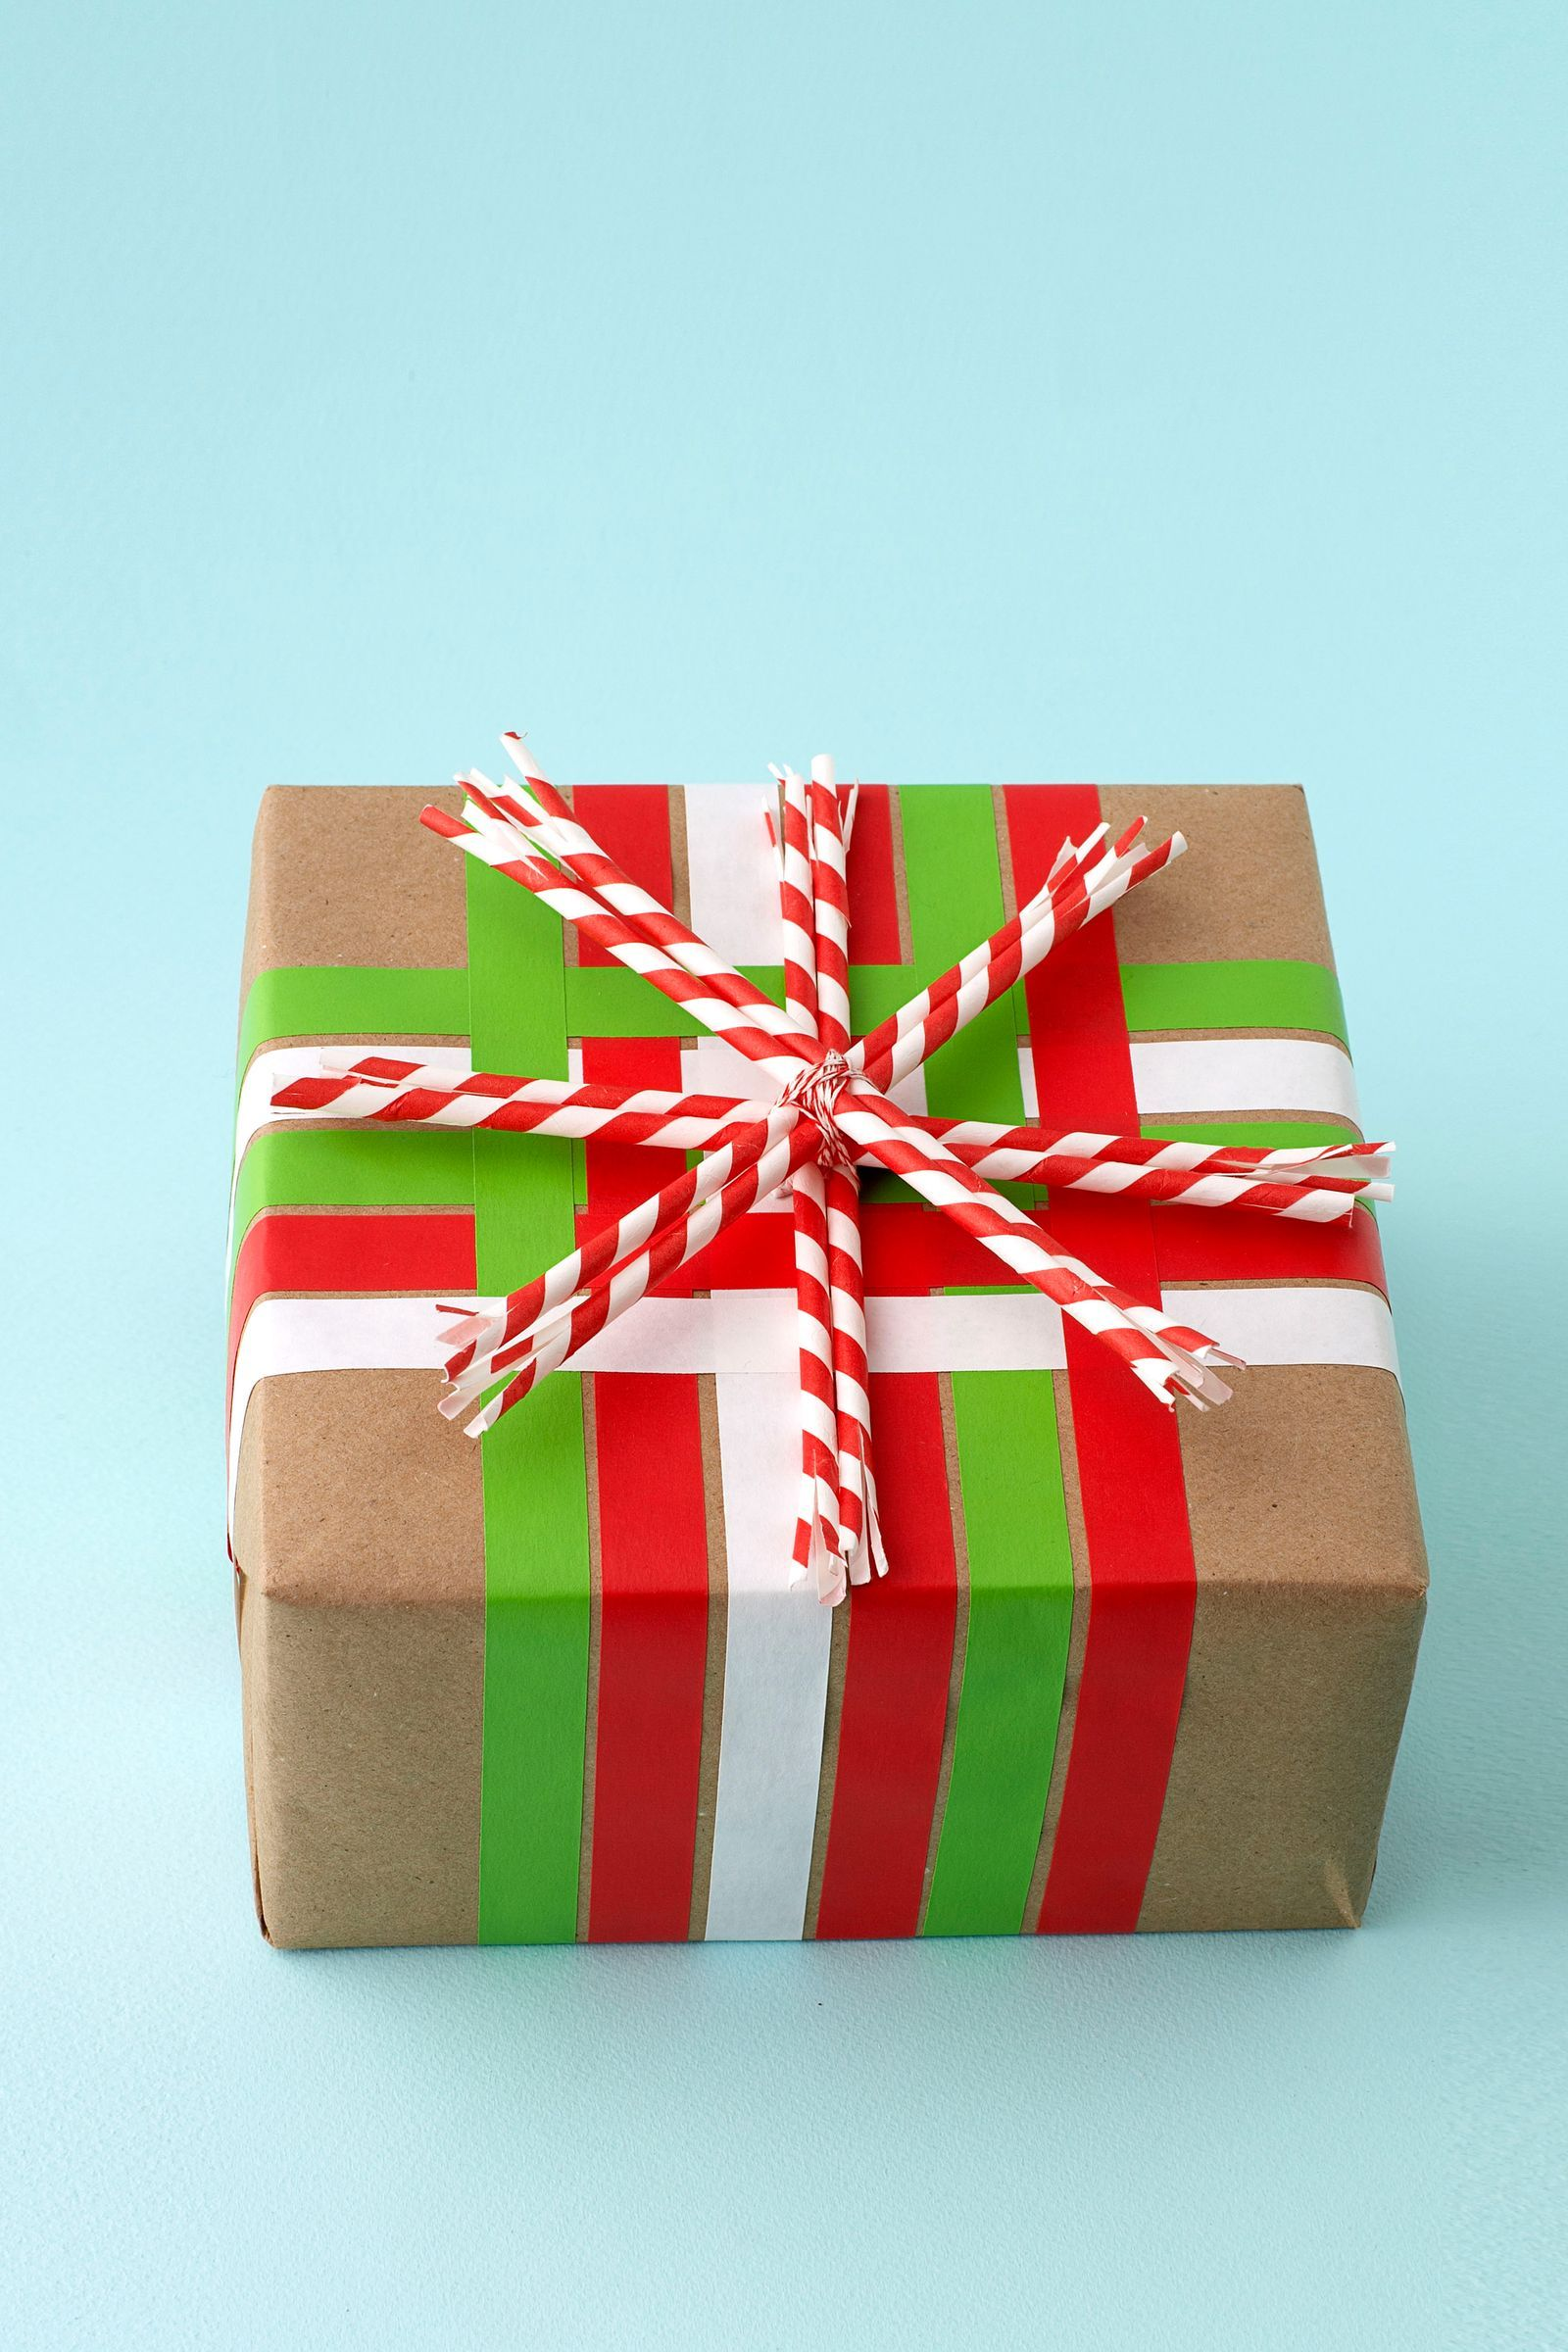 50 best gift wrapping ideas to make your presents stand